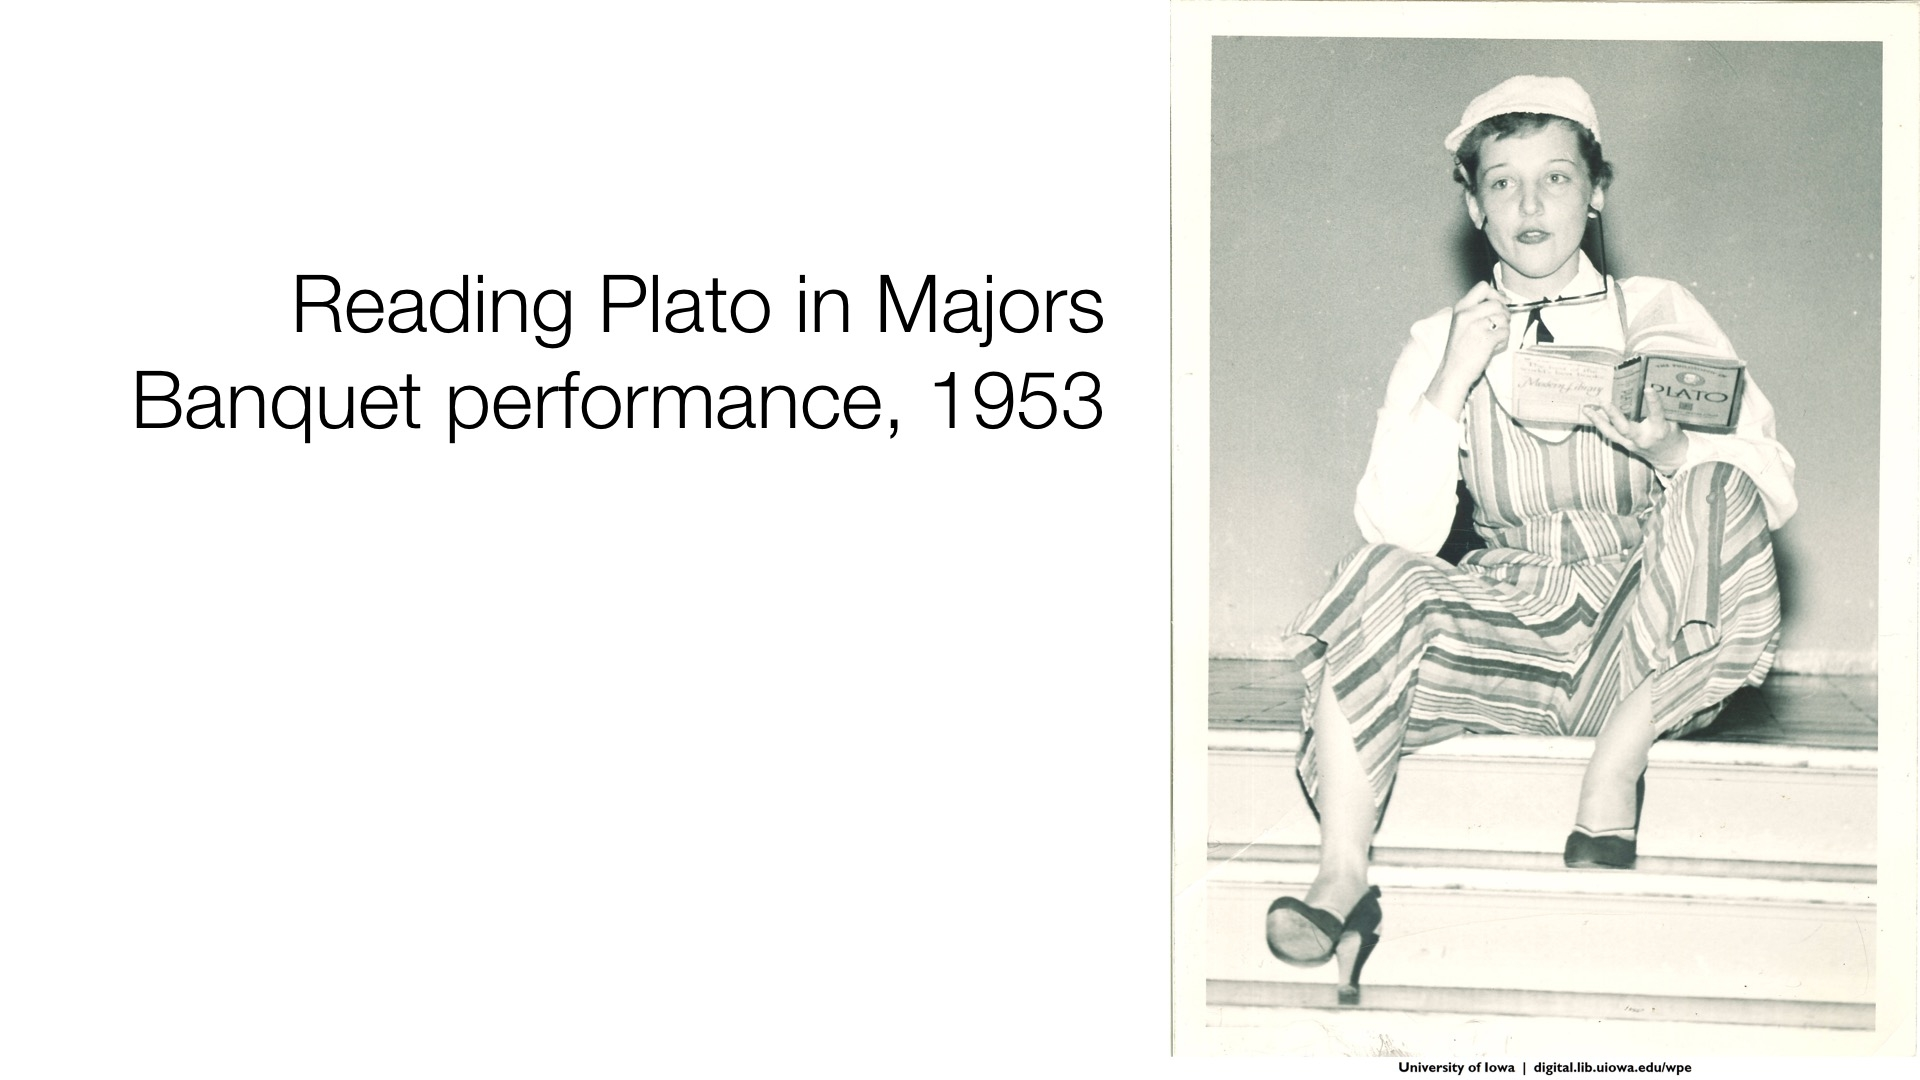 reading plato in majors banquet performance, 1953